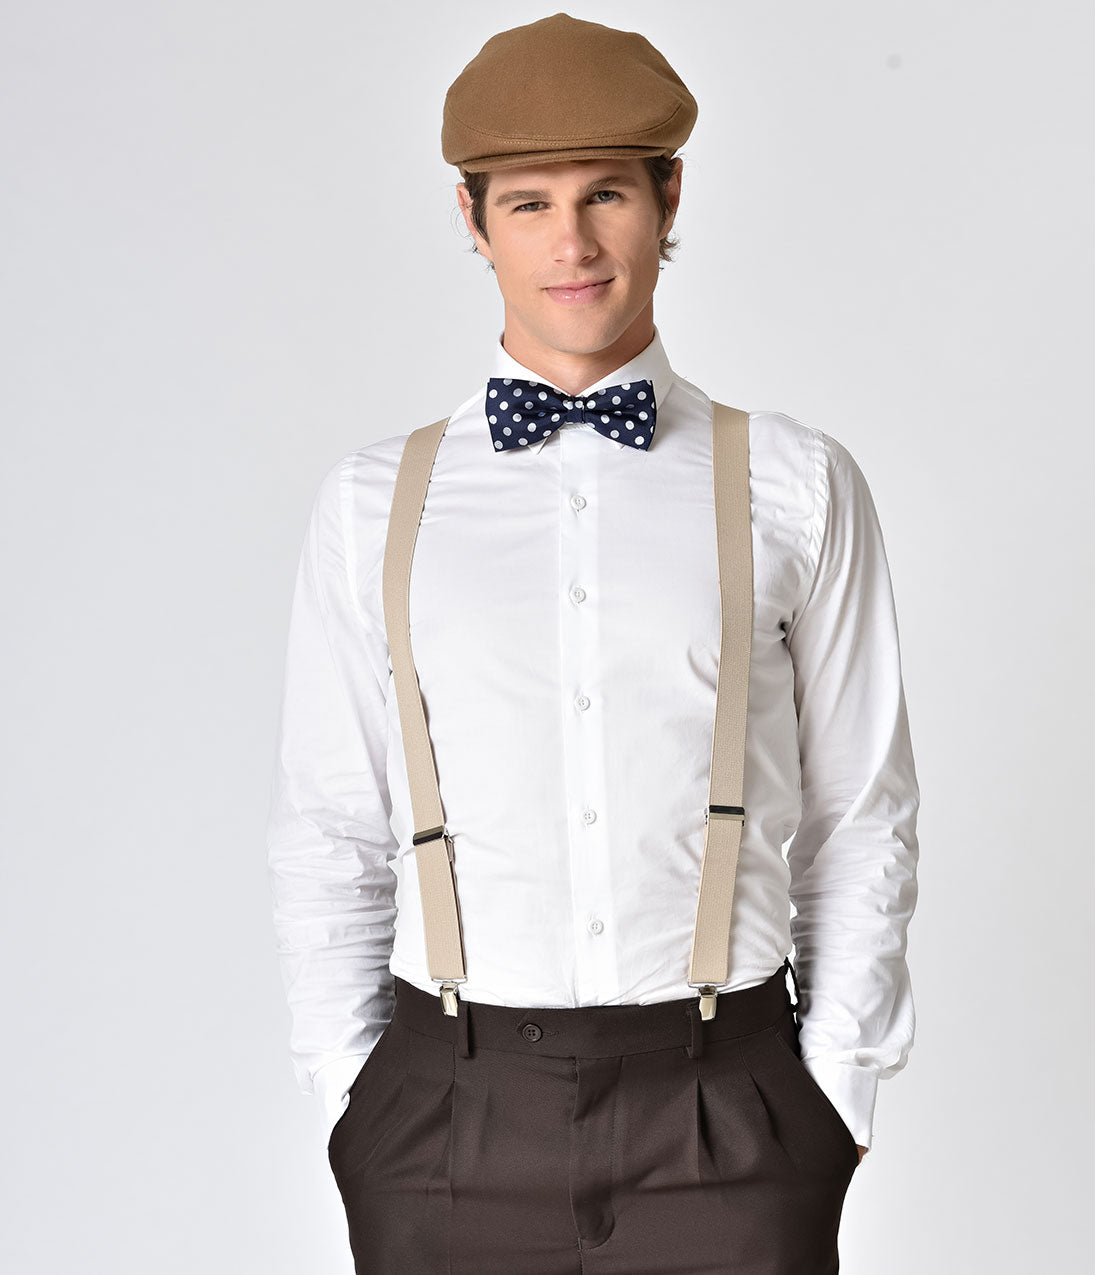 men 39 s vintage style suspenders. Black Bedroom Furniture Sets. Home Design Ideas